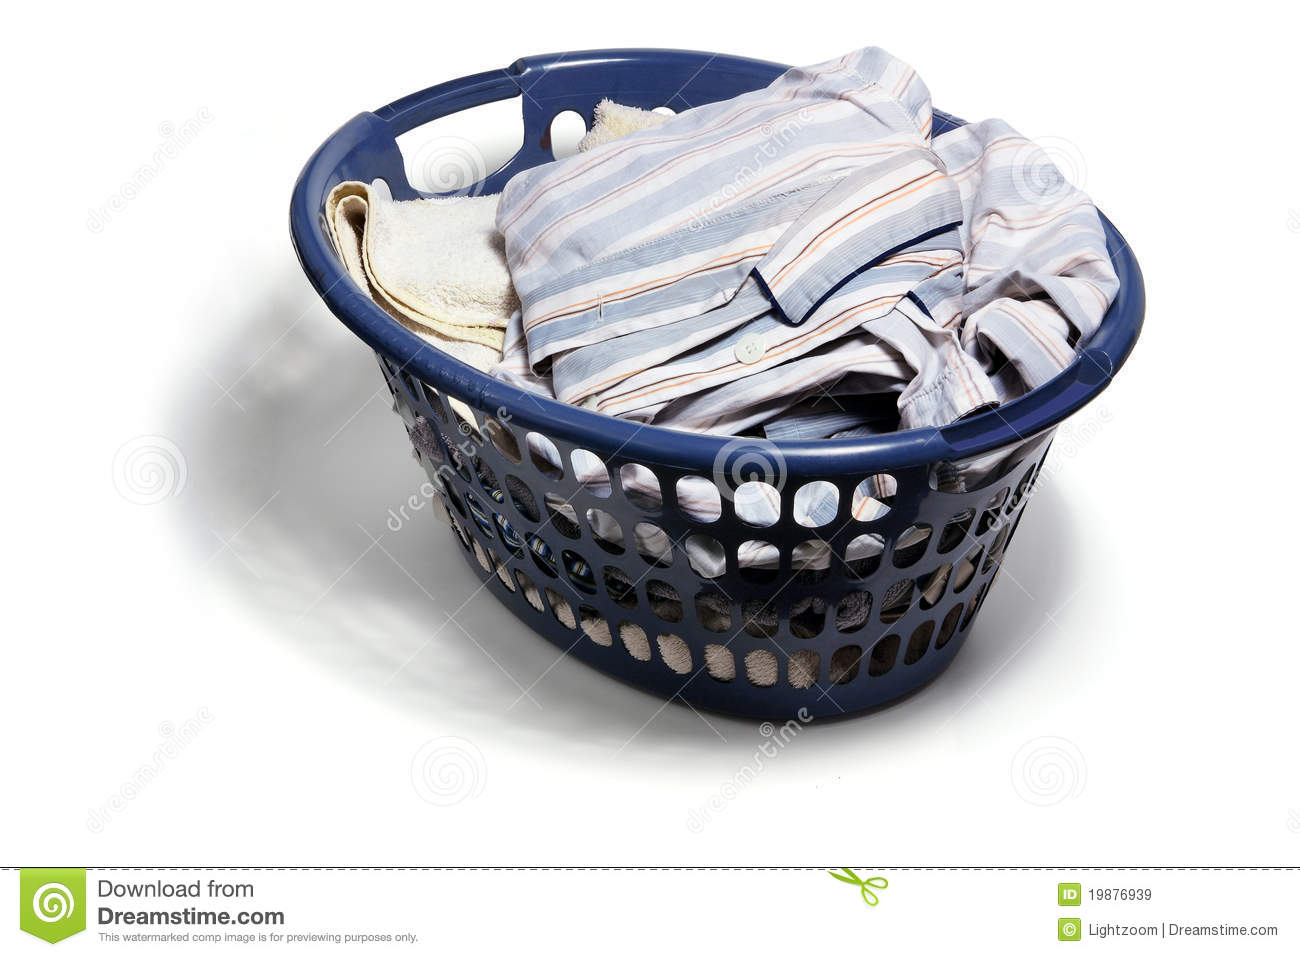 Dirty Laundry Baskets Laundry Basket With Dirty Clothes Stock Image Image